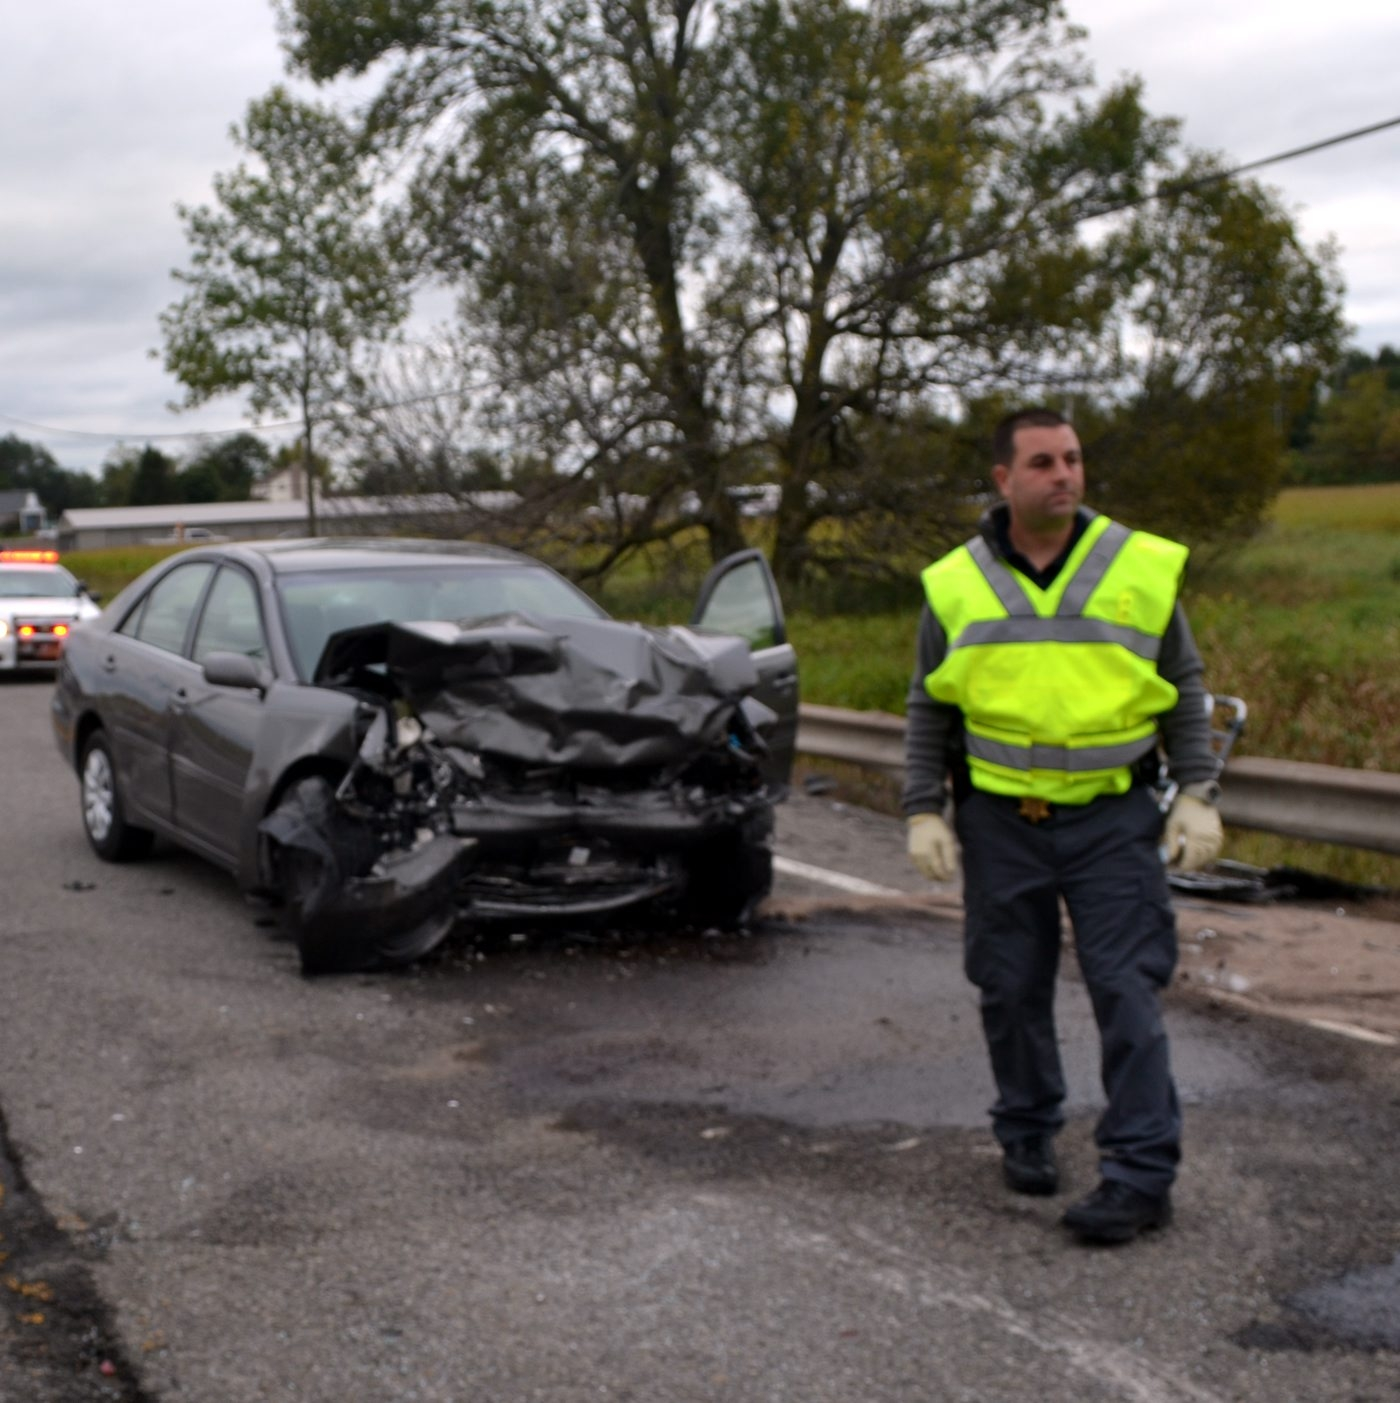 A woman was killed after her westbound car drove into the eastbound lane of Saunders Settlement Road near Baer Road on Wednesday afternoon. The driver of a second car was injured.